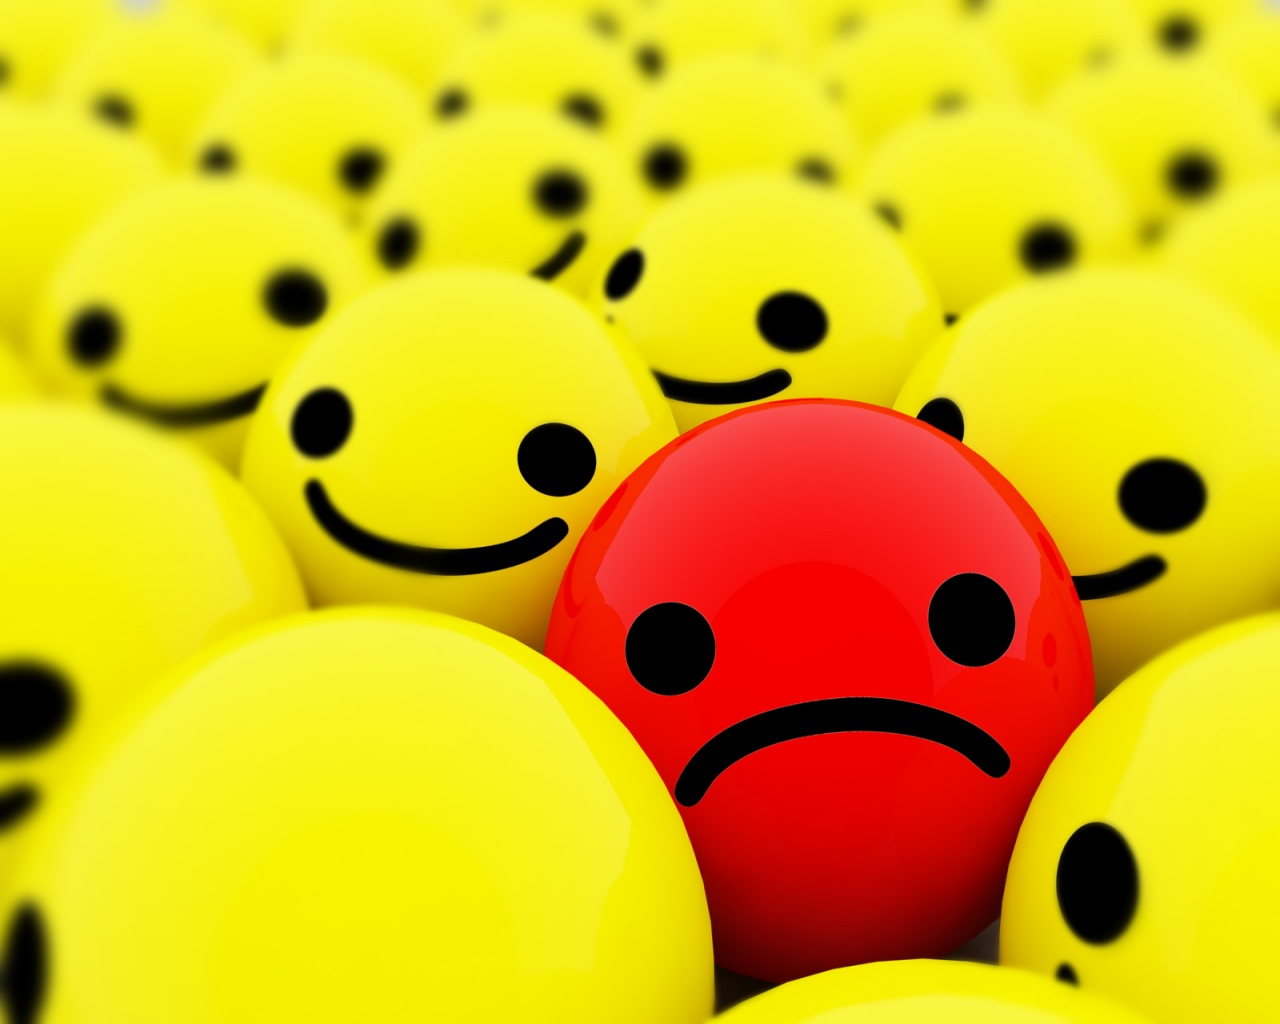 3d smileys wallpapers in jpg format for free download